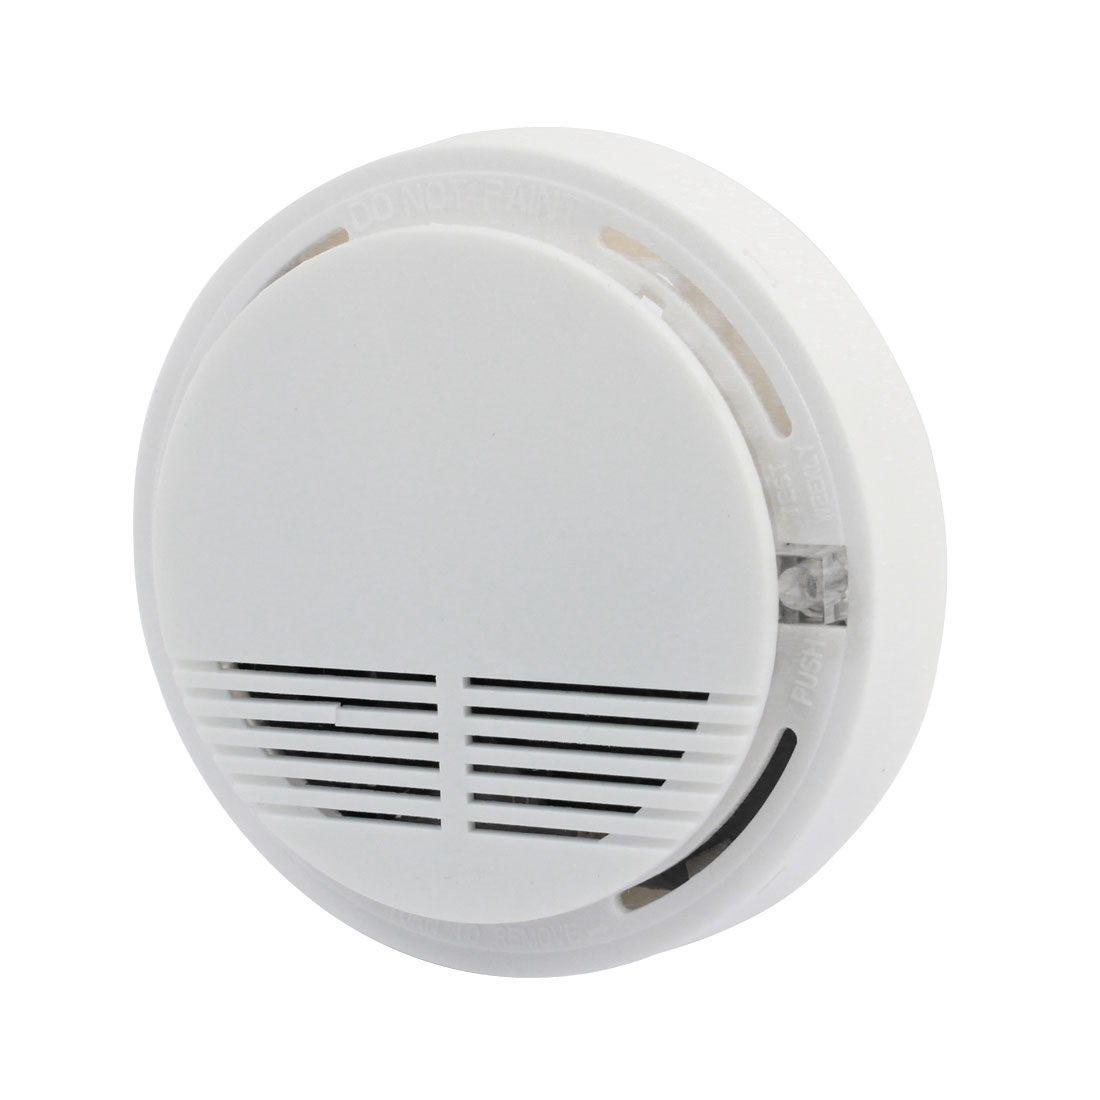 Photoelectric Wireless Smoke Detector Sensor Fire Alarm 10.5cm x 3cm